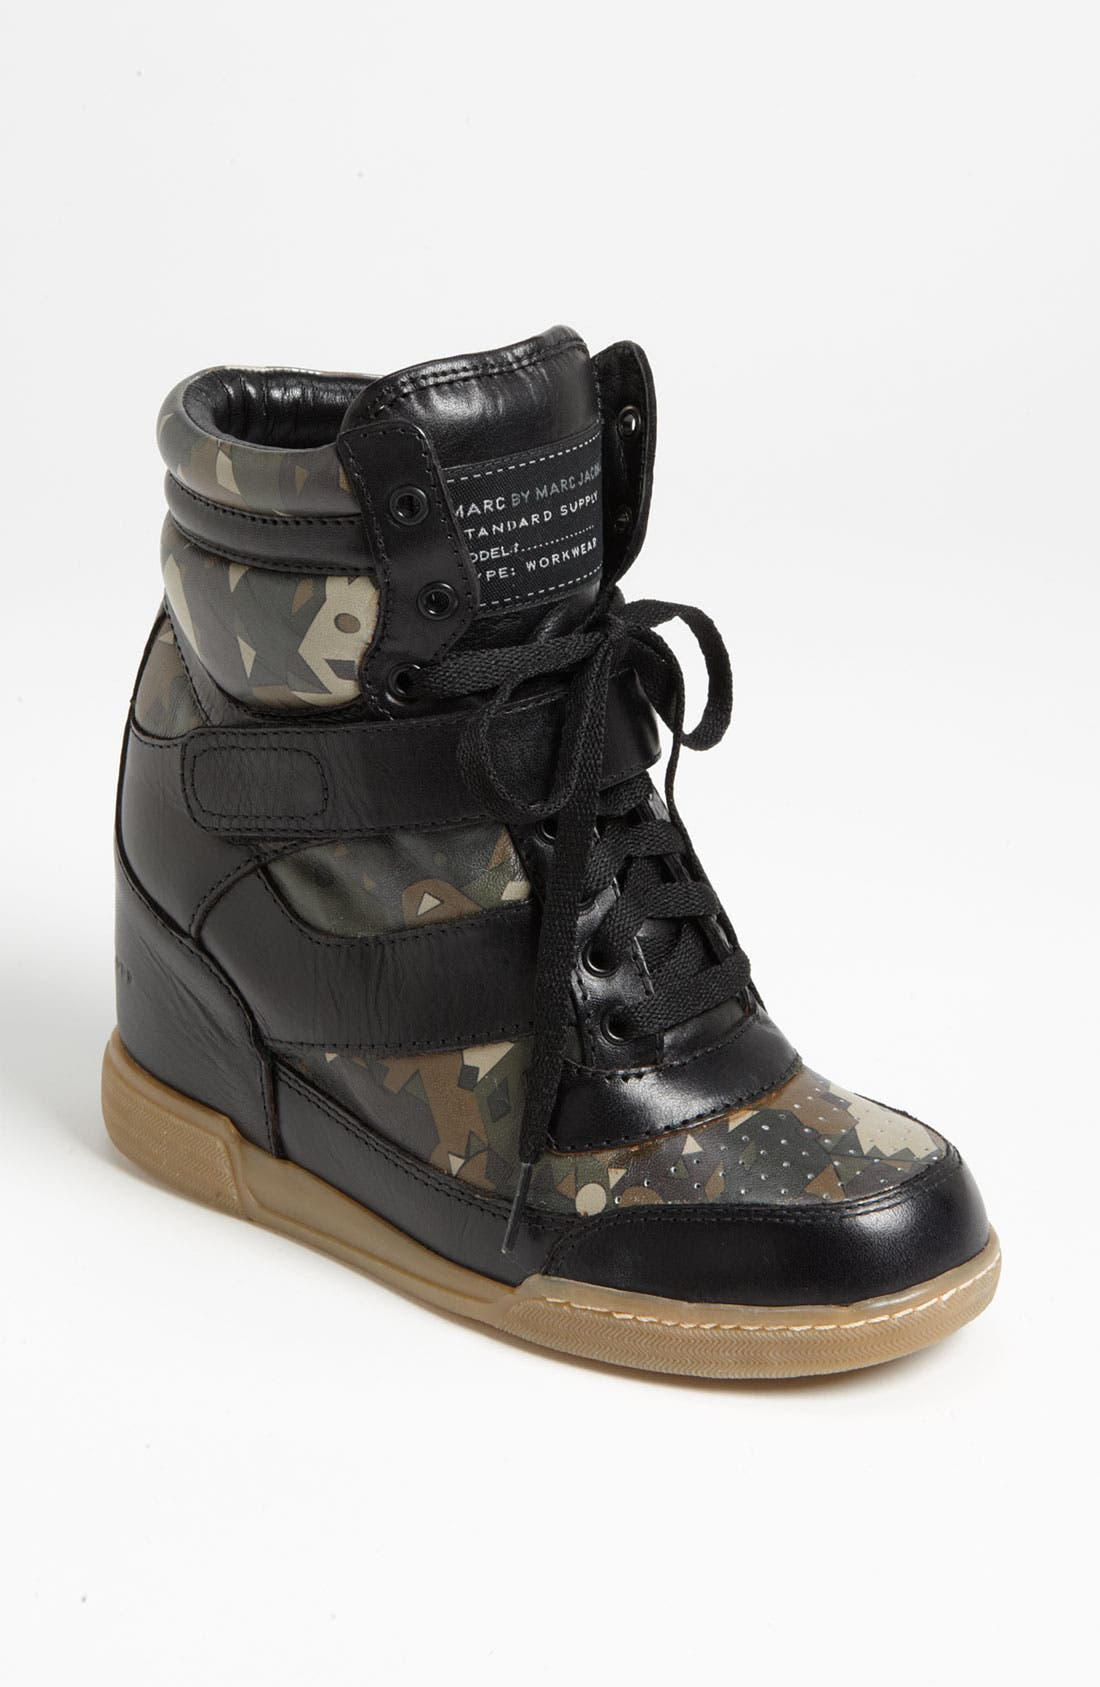 Alternate Image 1 Selected - MARC BY MARC JACOBS High Top Wedge Sneaker